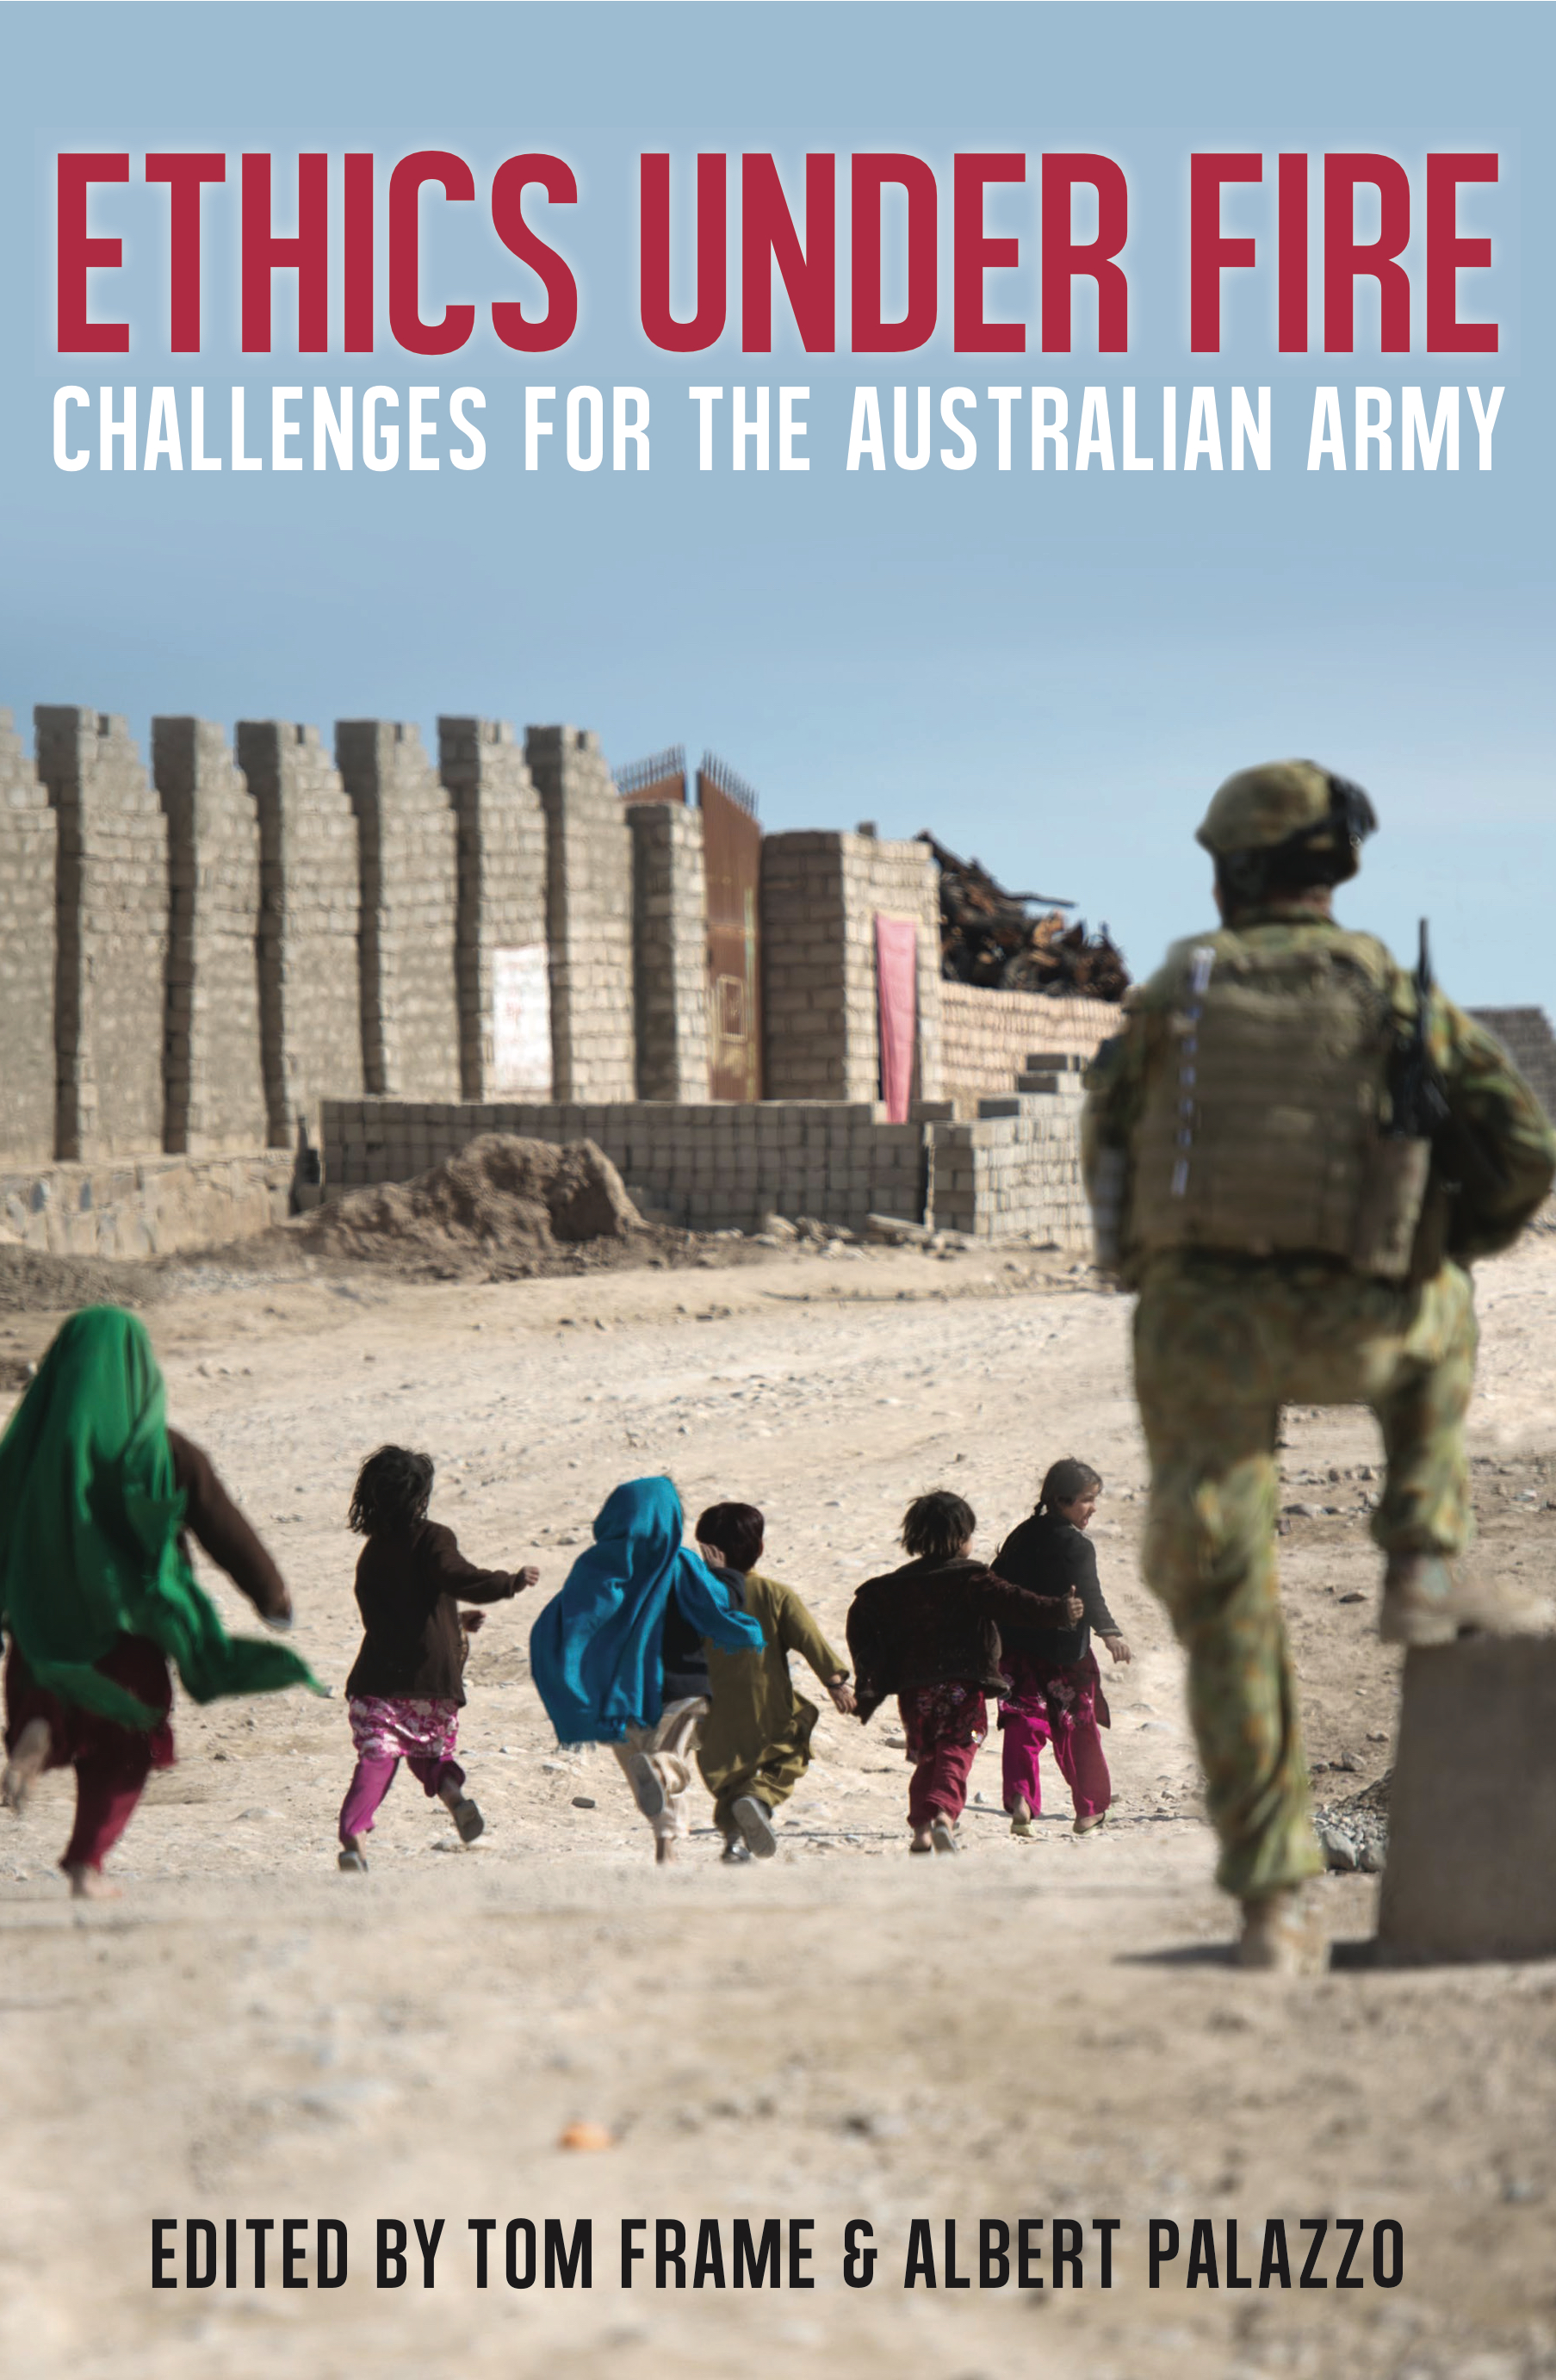 ethical issues facing the army